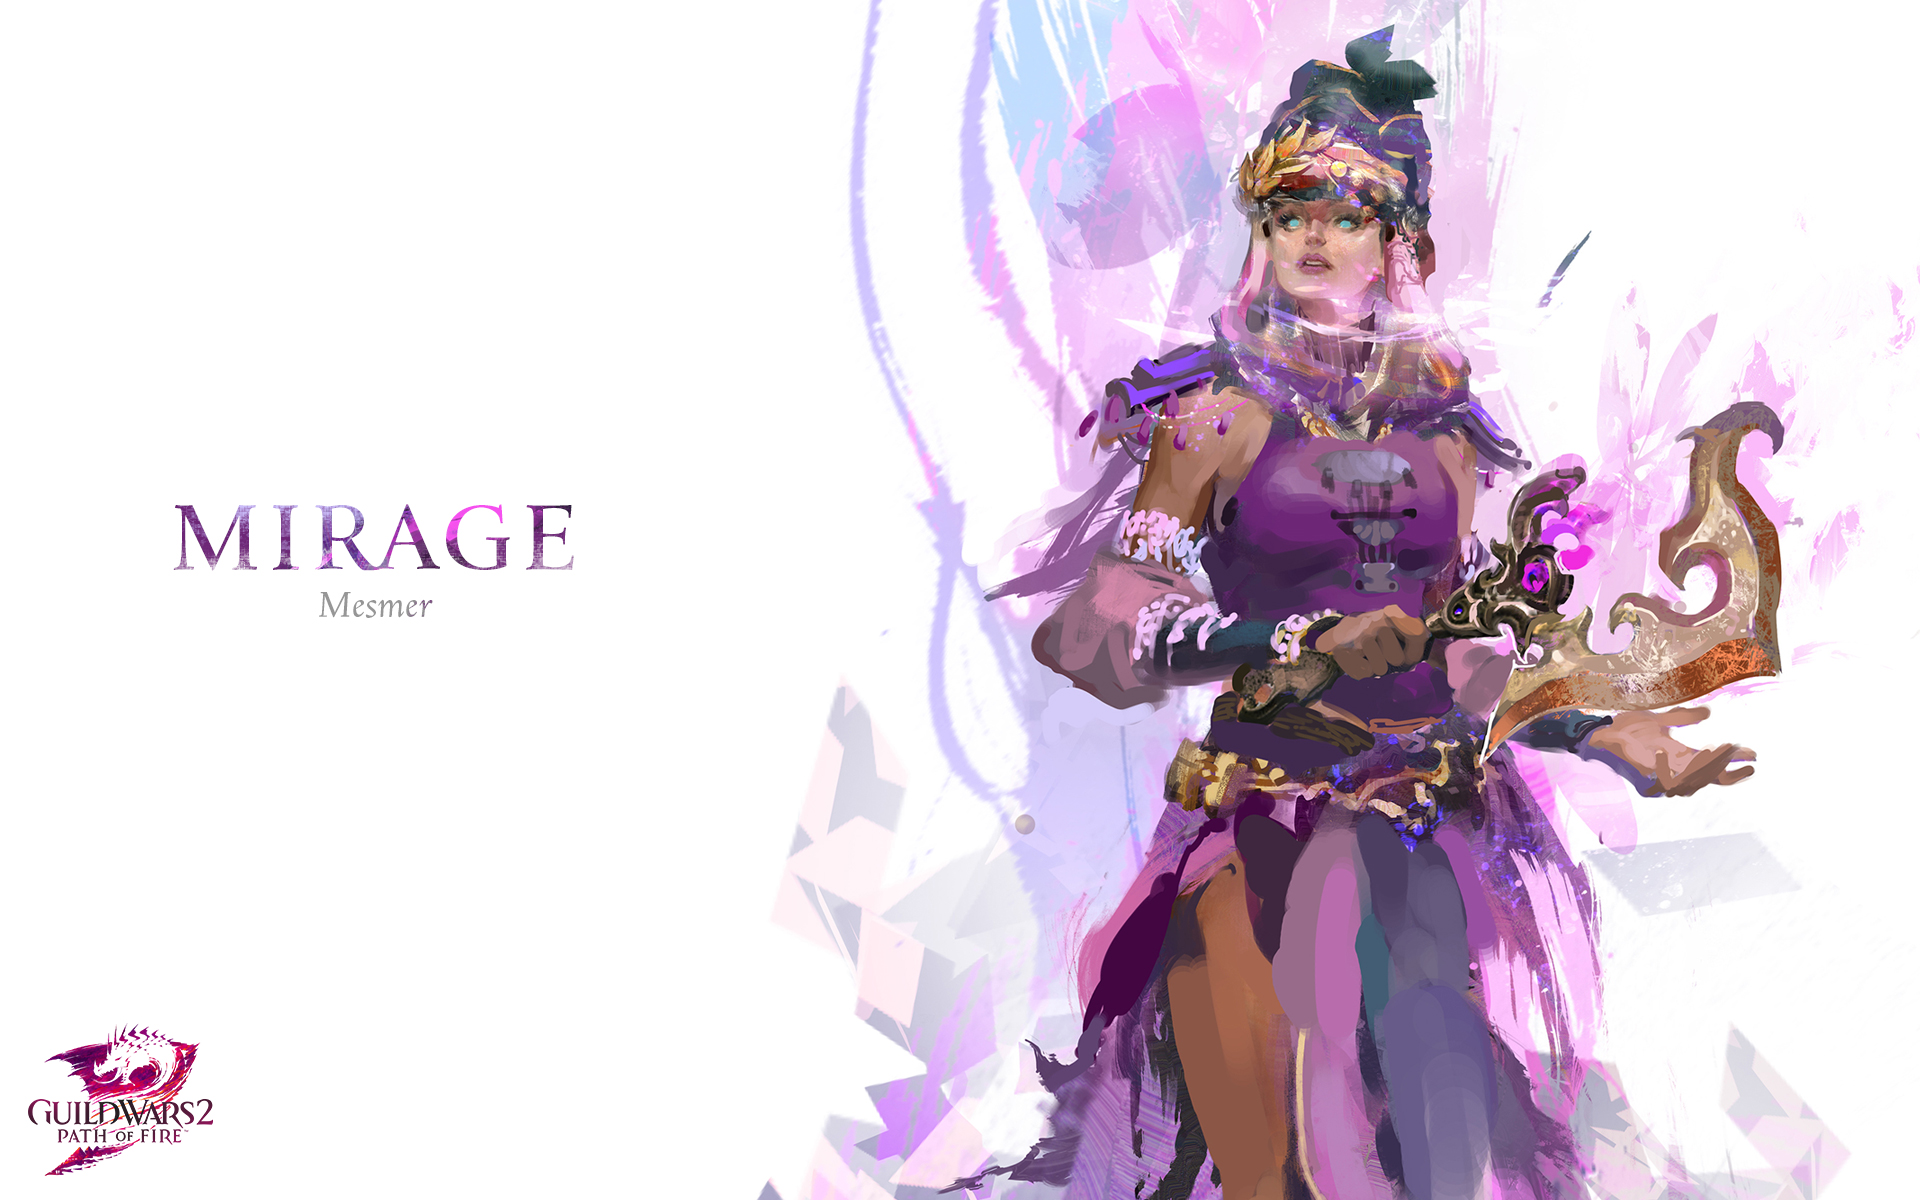 gw2 guildwars2 wallpapers tapeta garś� tapet